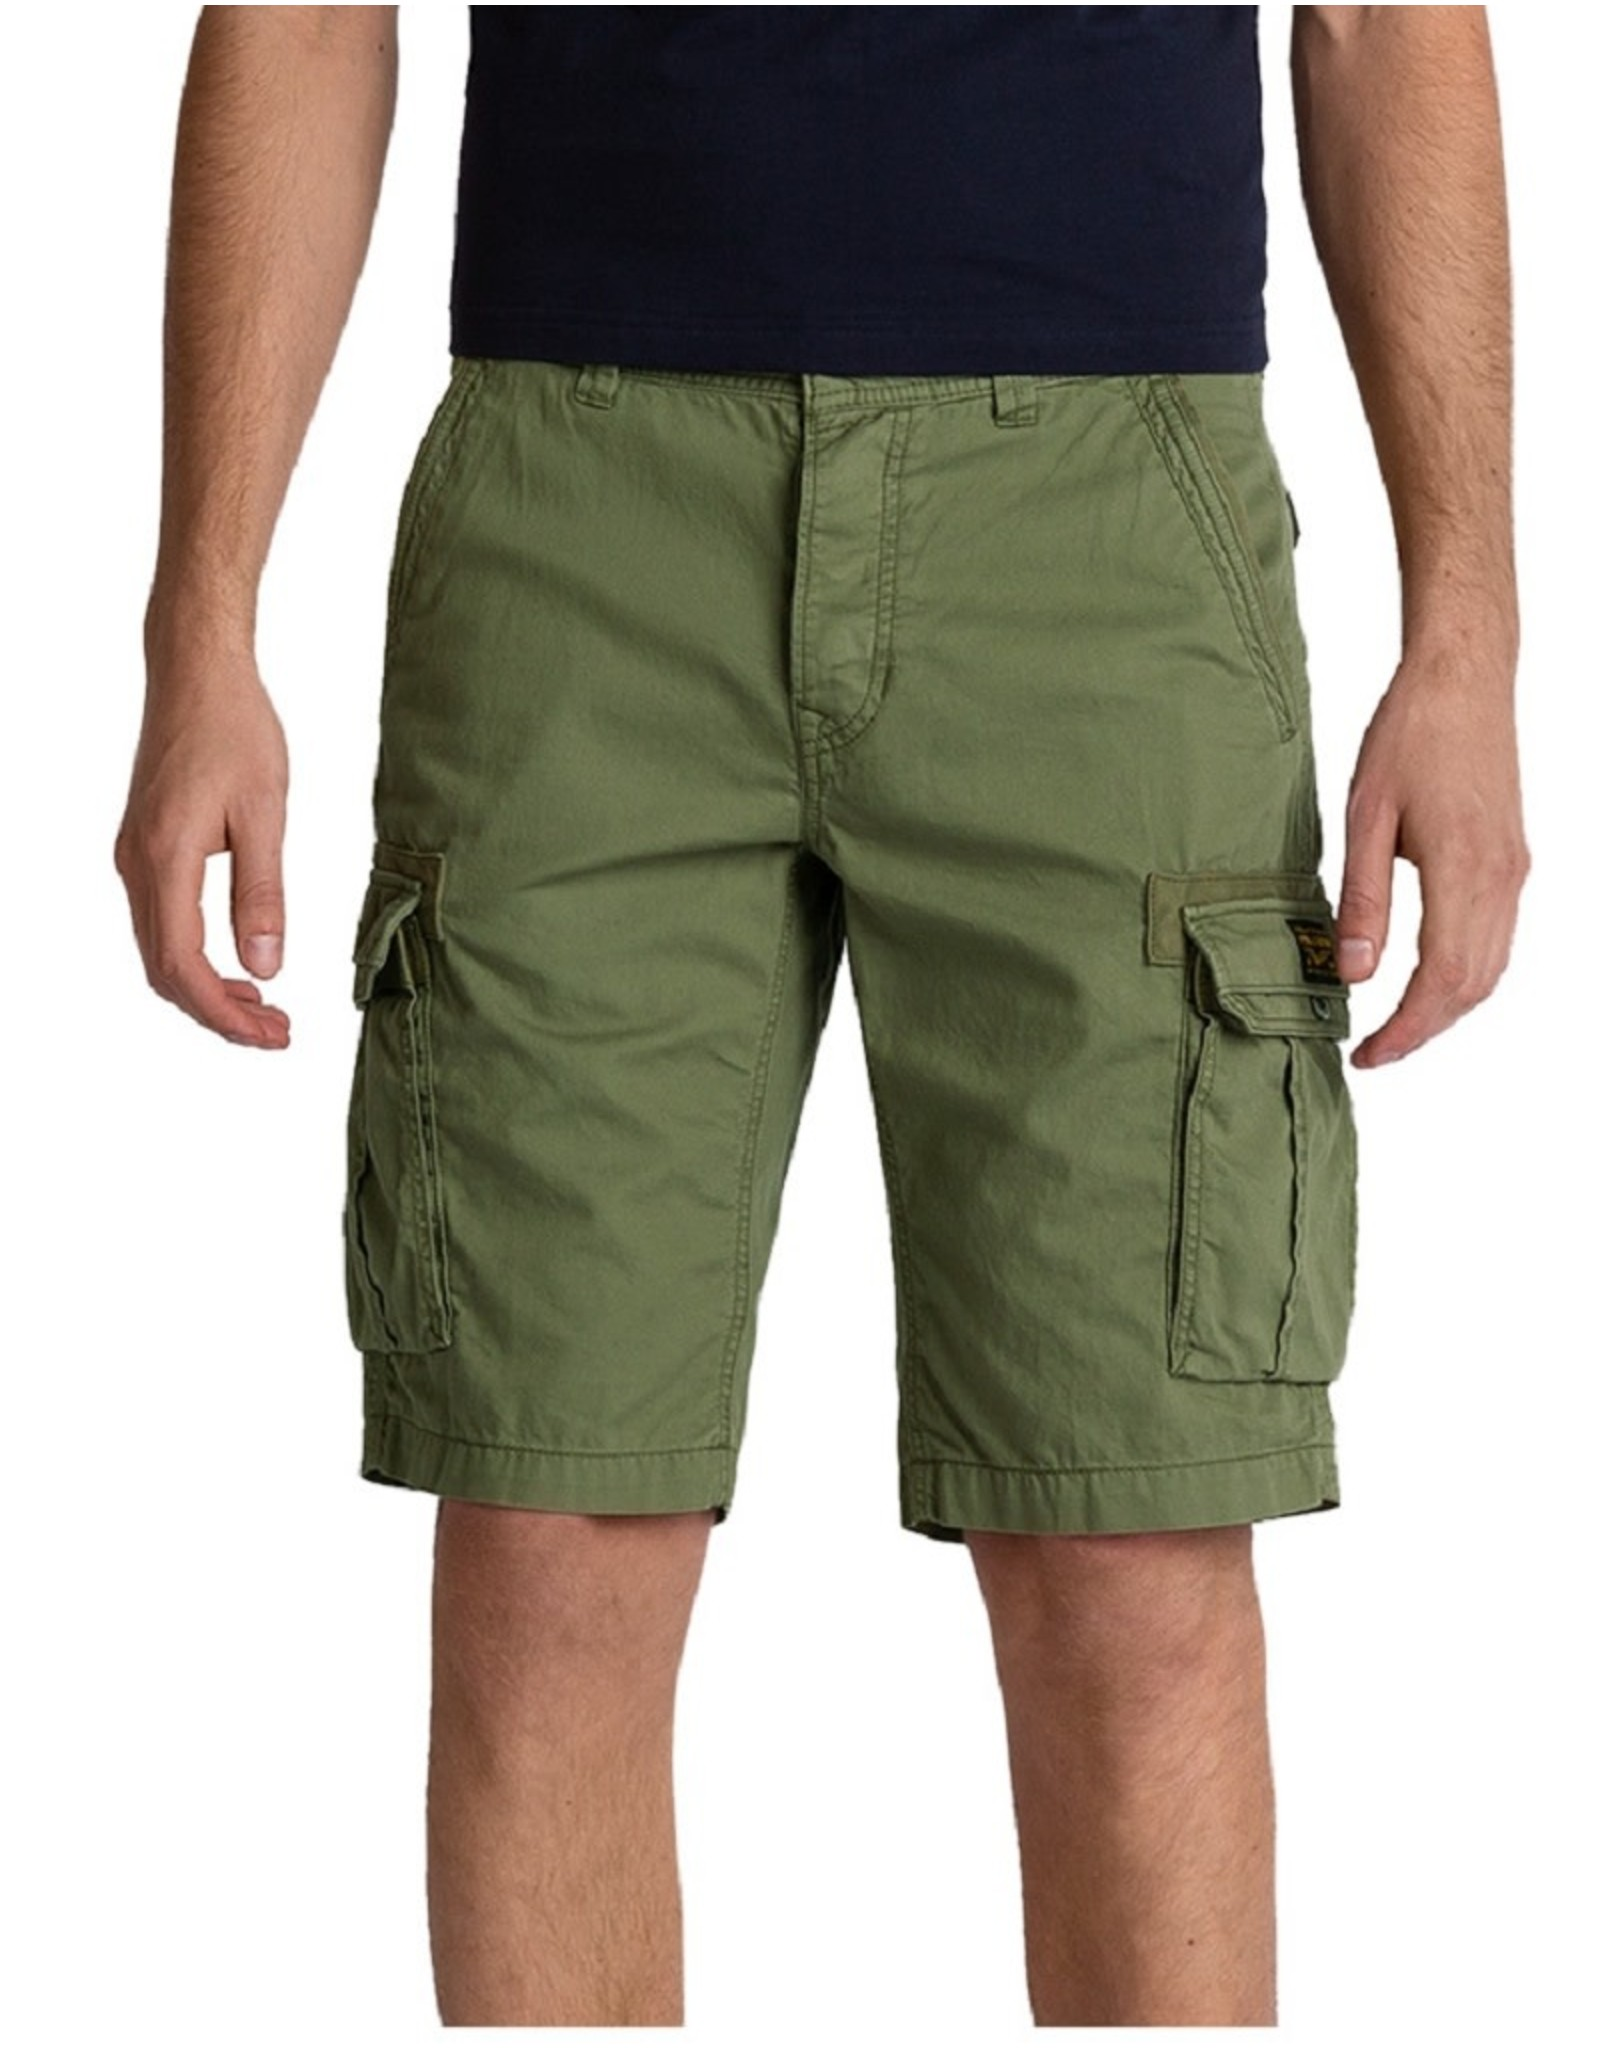 PME Legend PME Legend cargo short dobby structure Army green